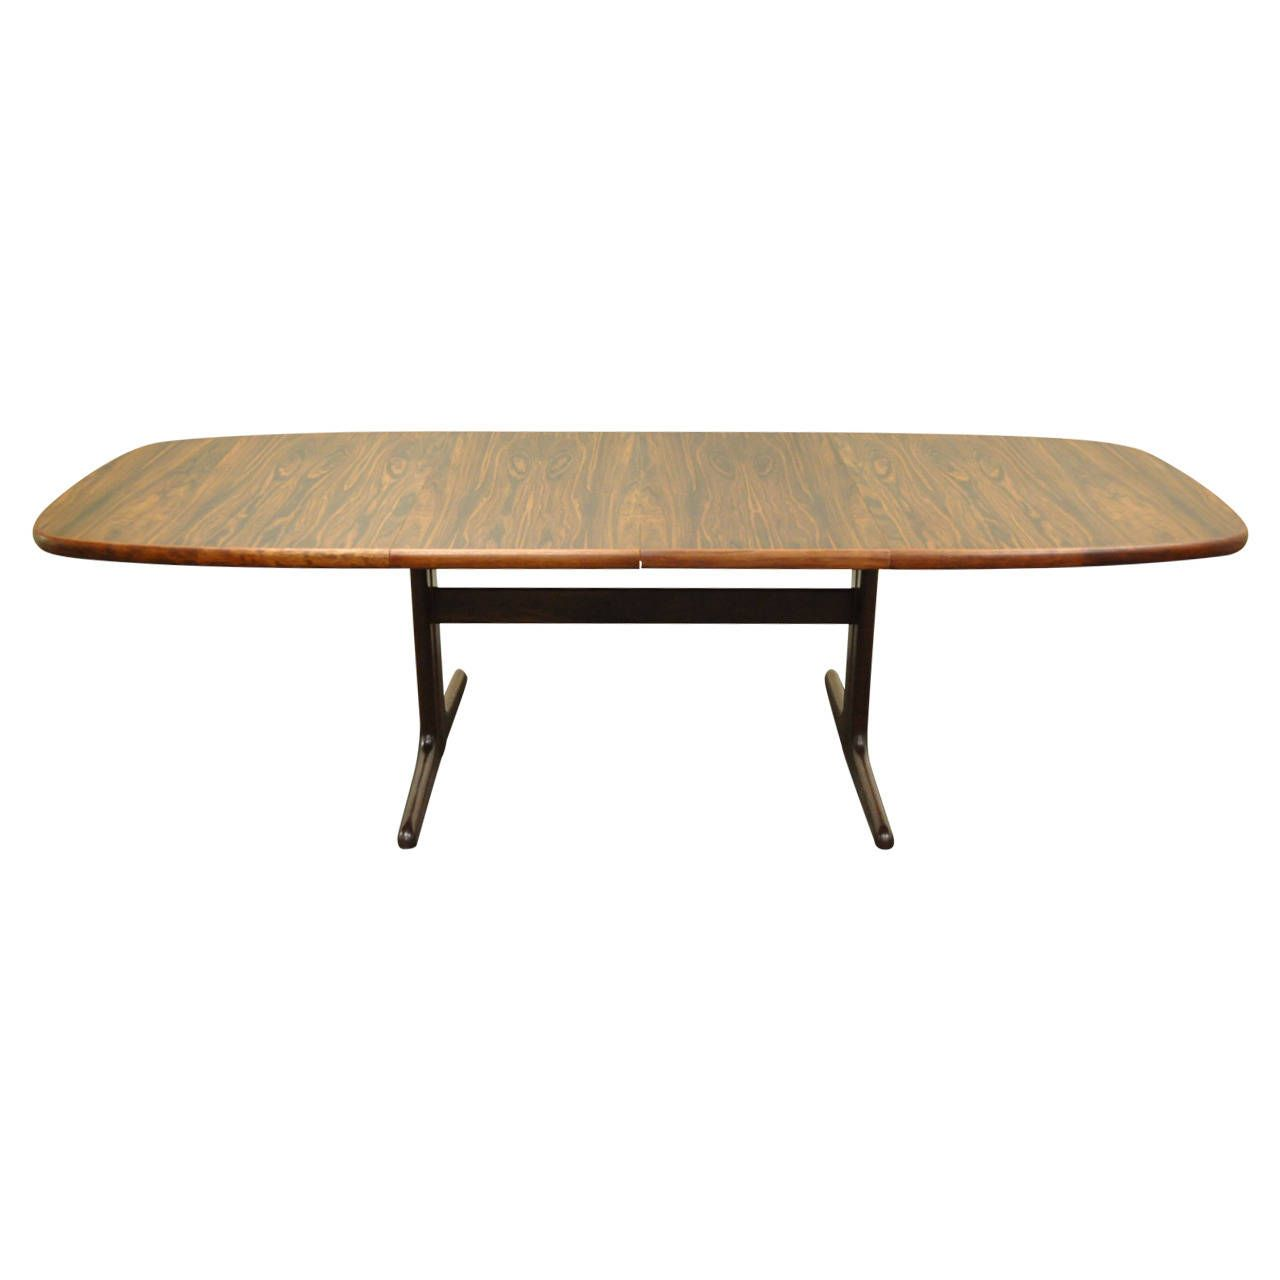 Midcentury Danish Modern Rosewood Dining Table With Two Leaves Best Danish Modern Dining Room Inspiration